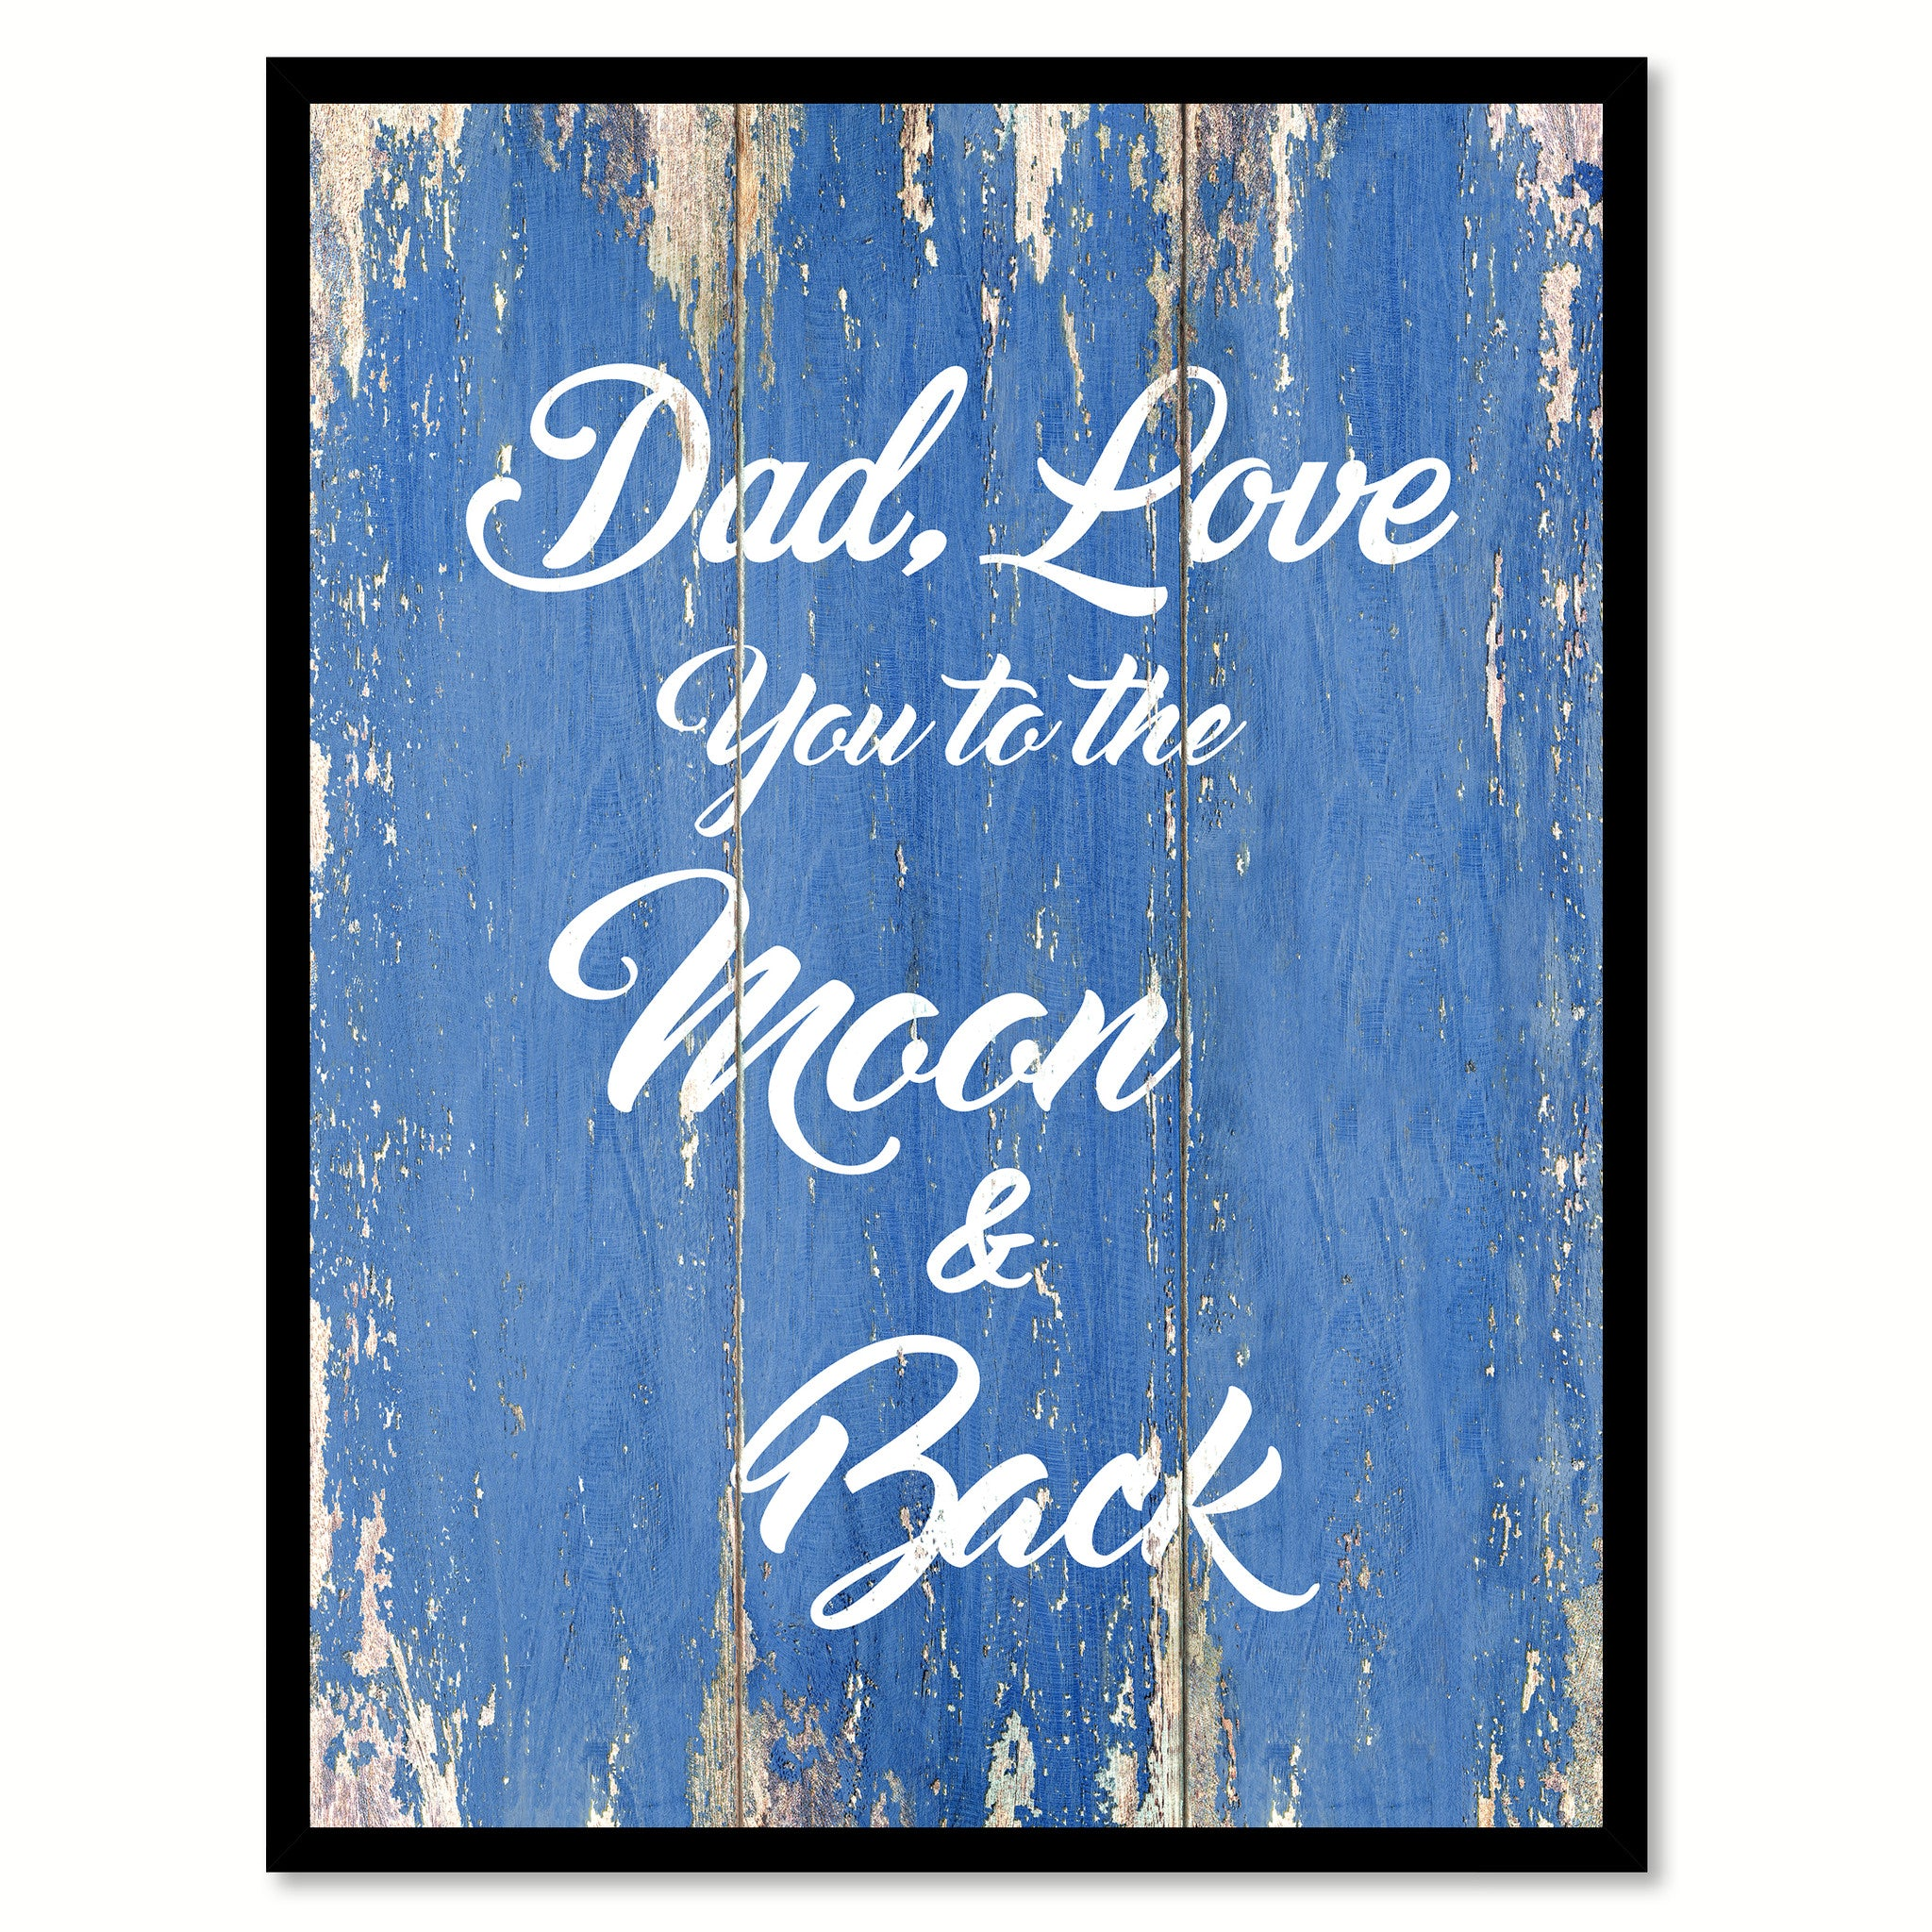 Dad Love You To The Moon & Back Happy Love Quote Saying Gift Ideas Home Decor Wall Art